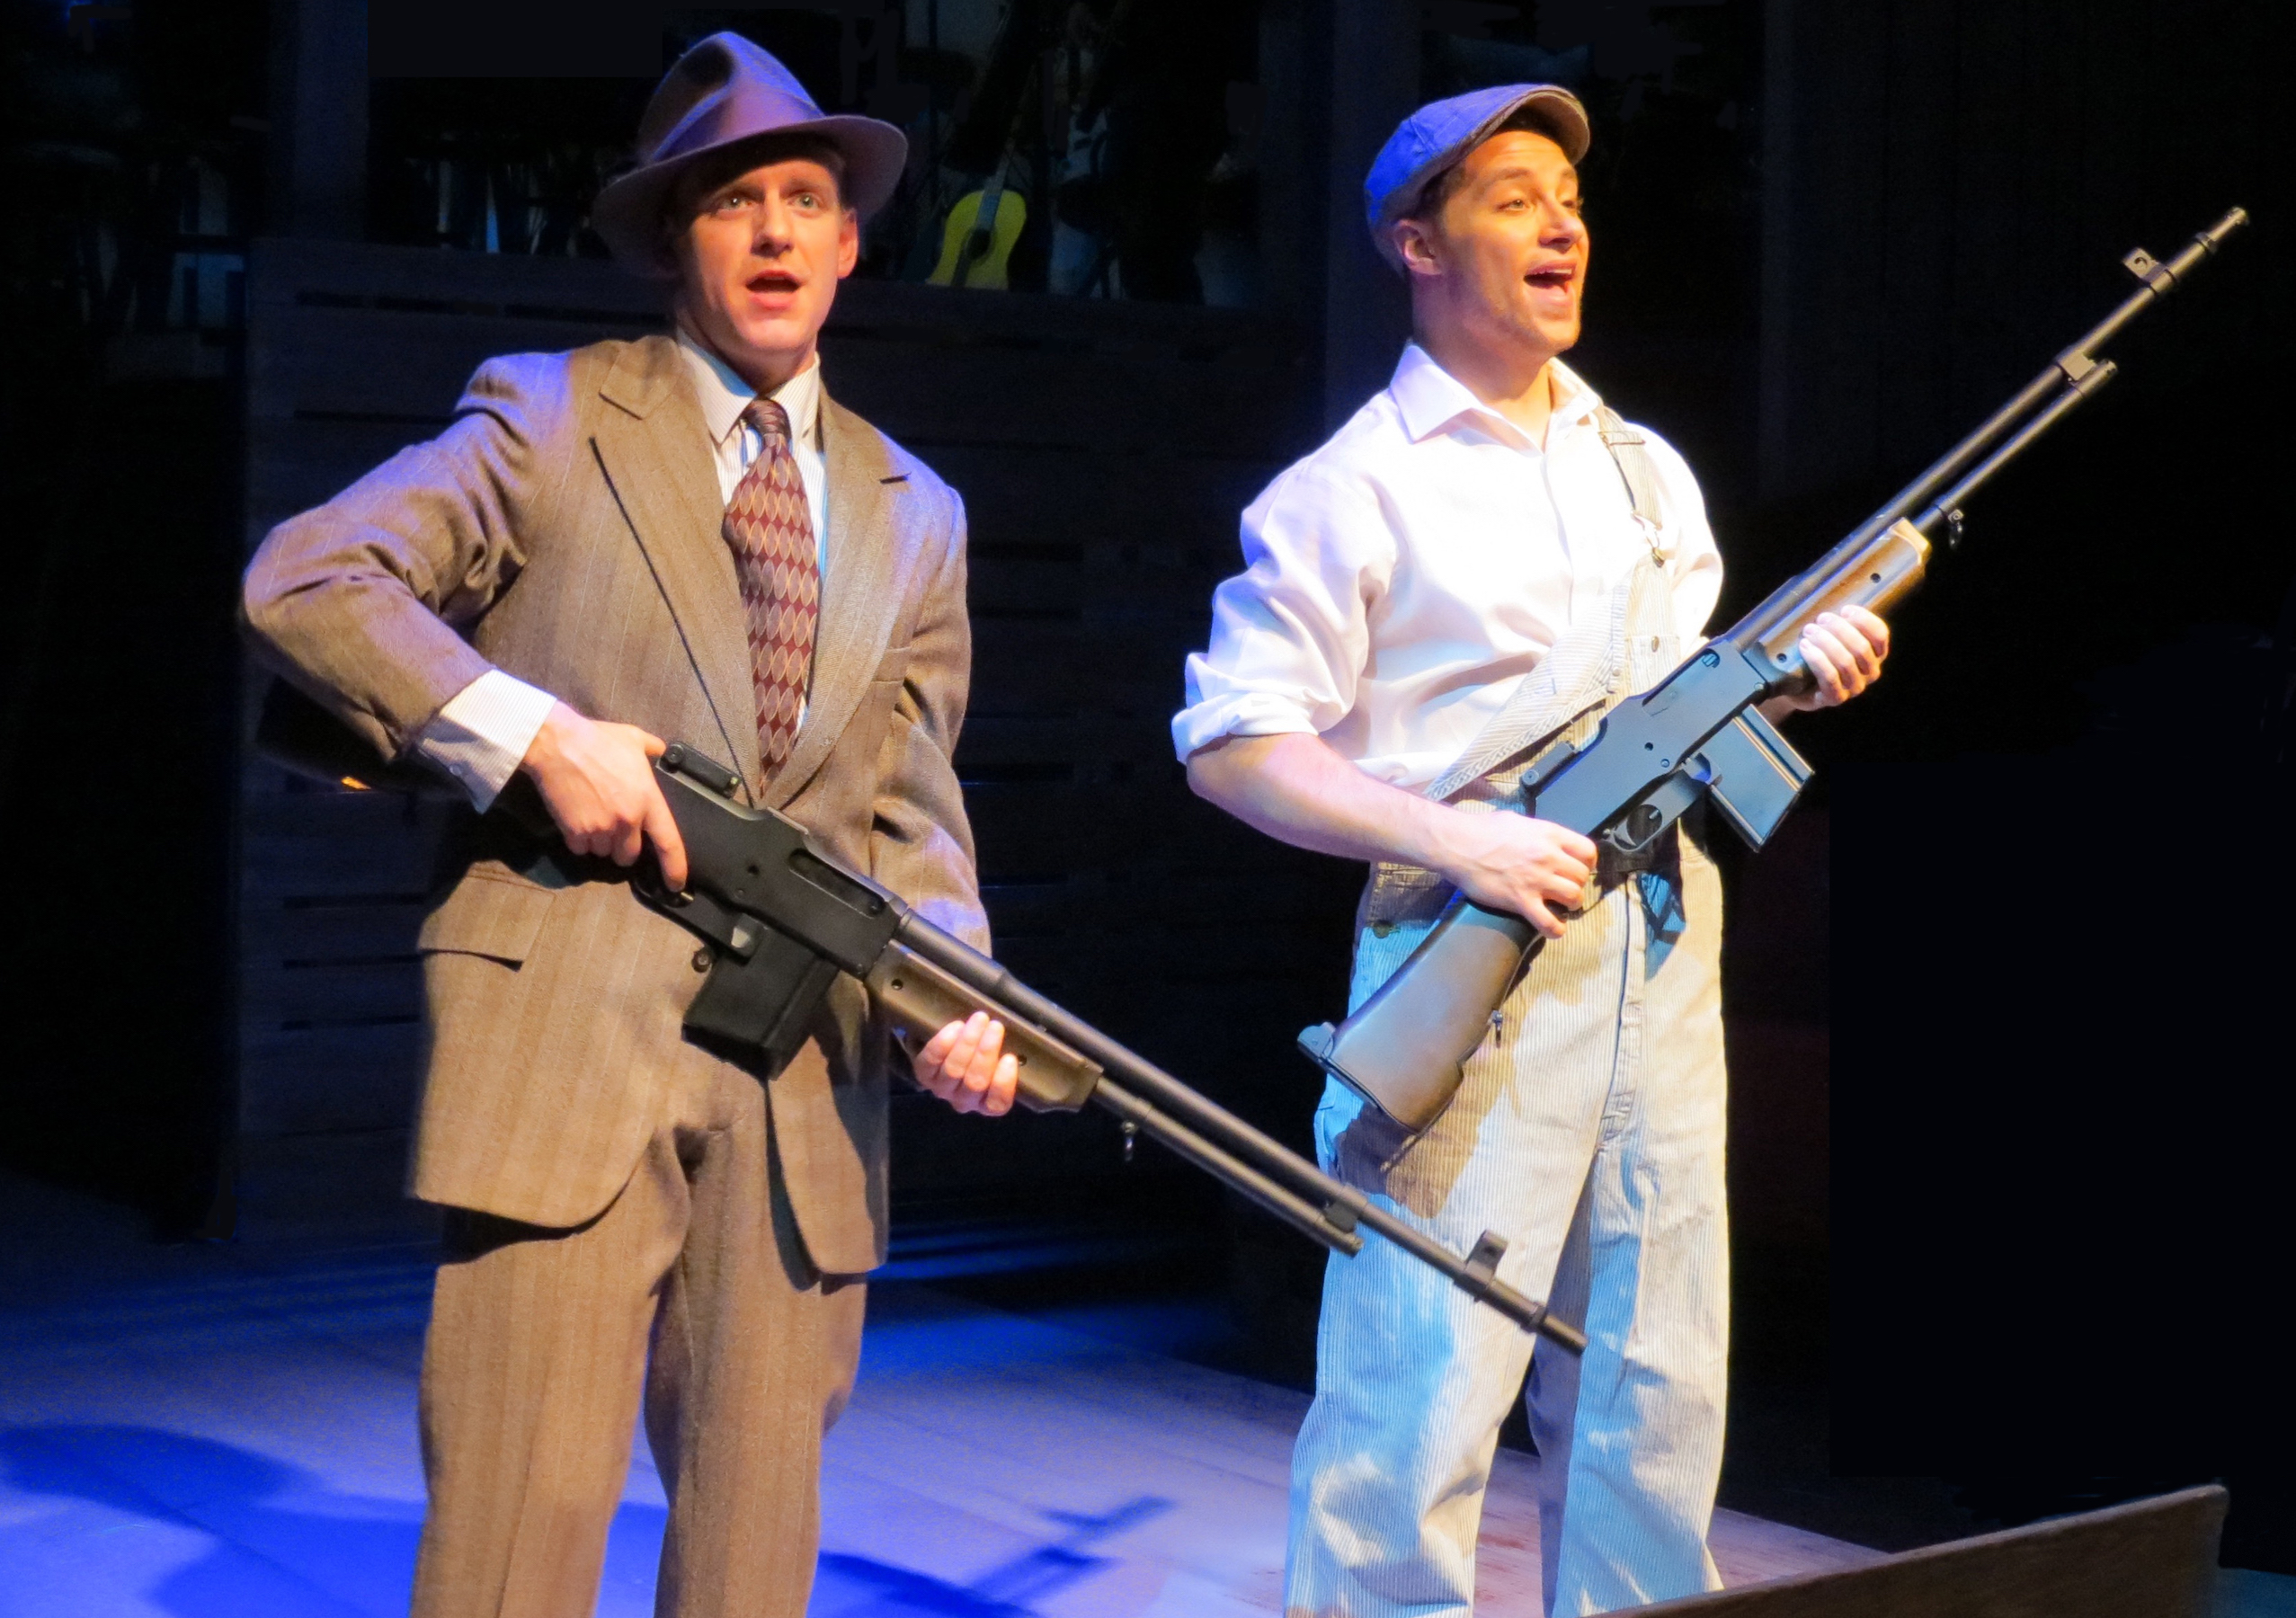 BWW Review: BONNIE & CLYDE at Town Hall Arts Center